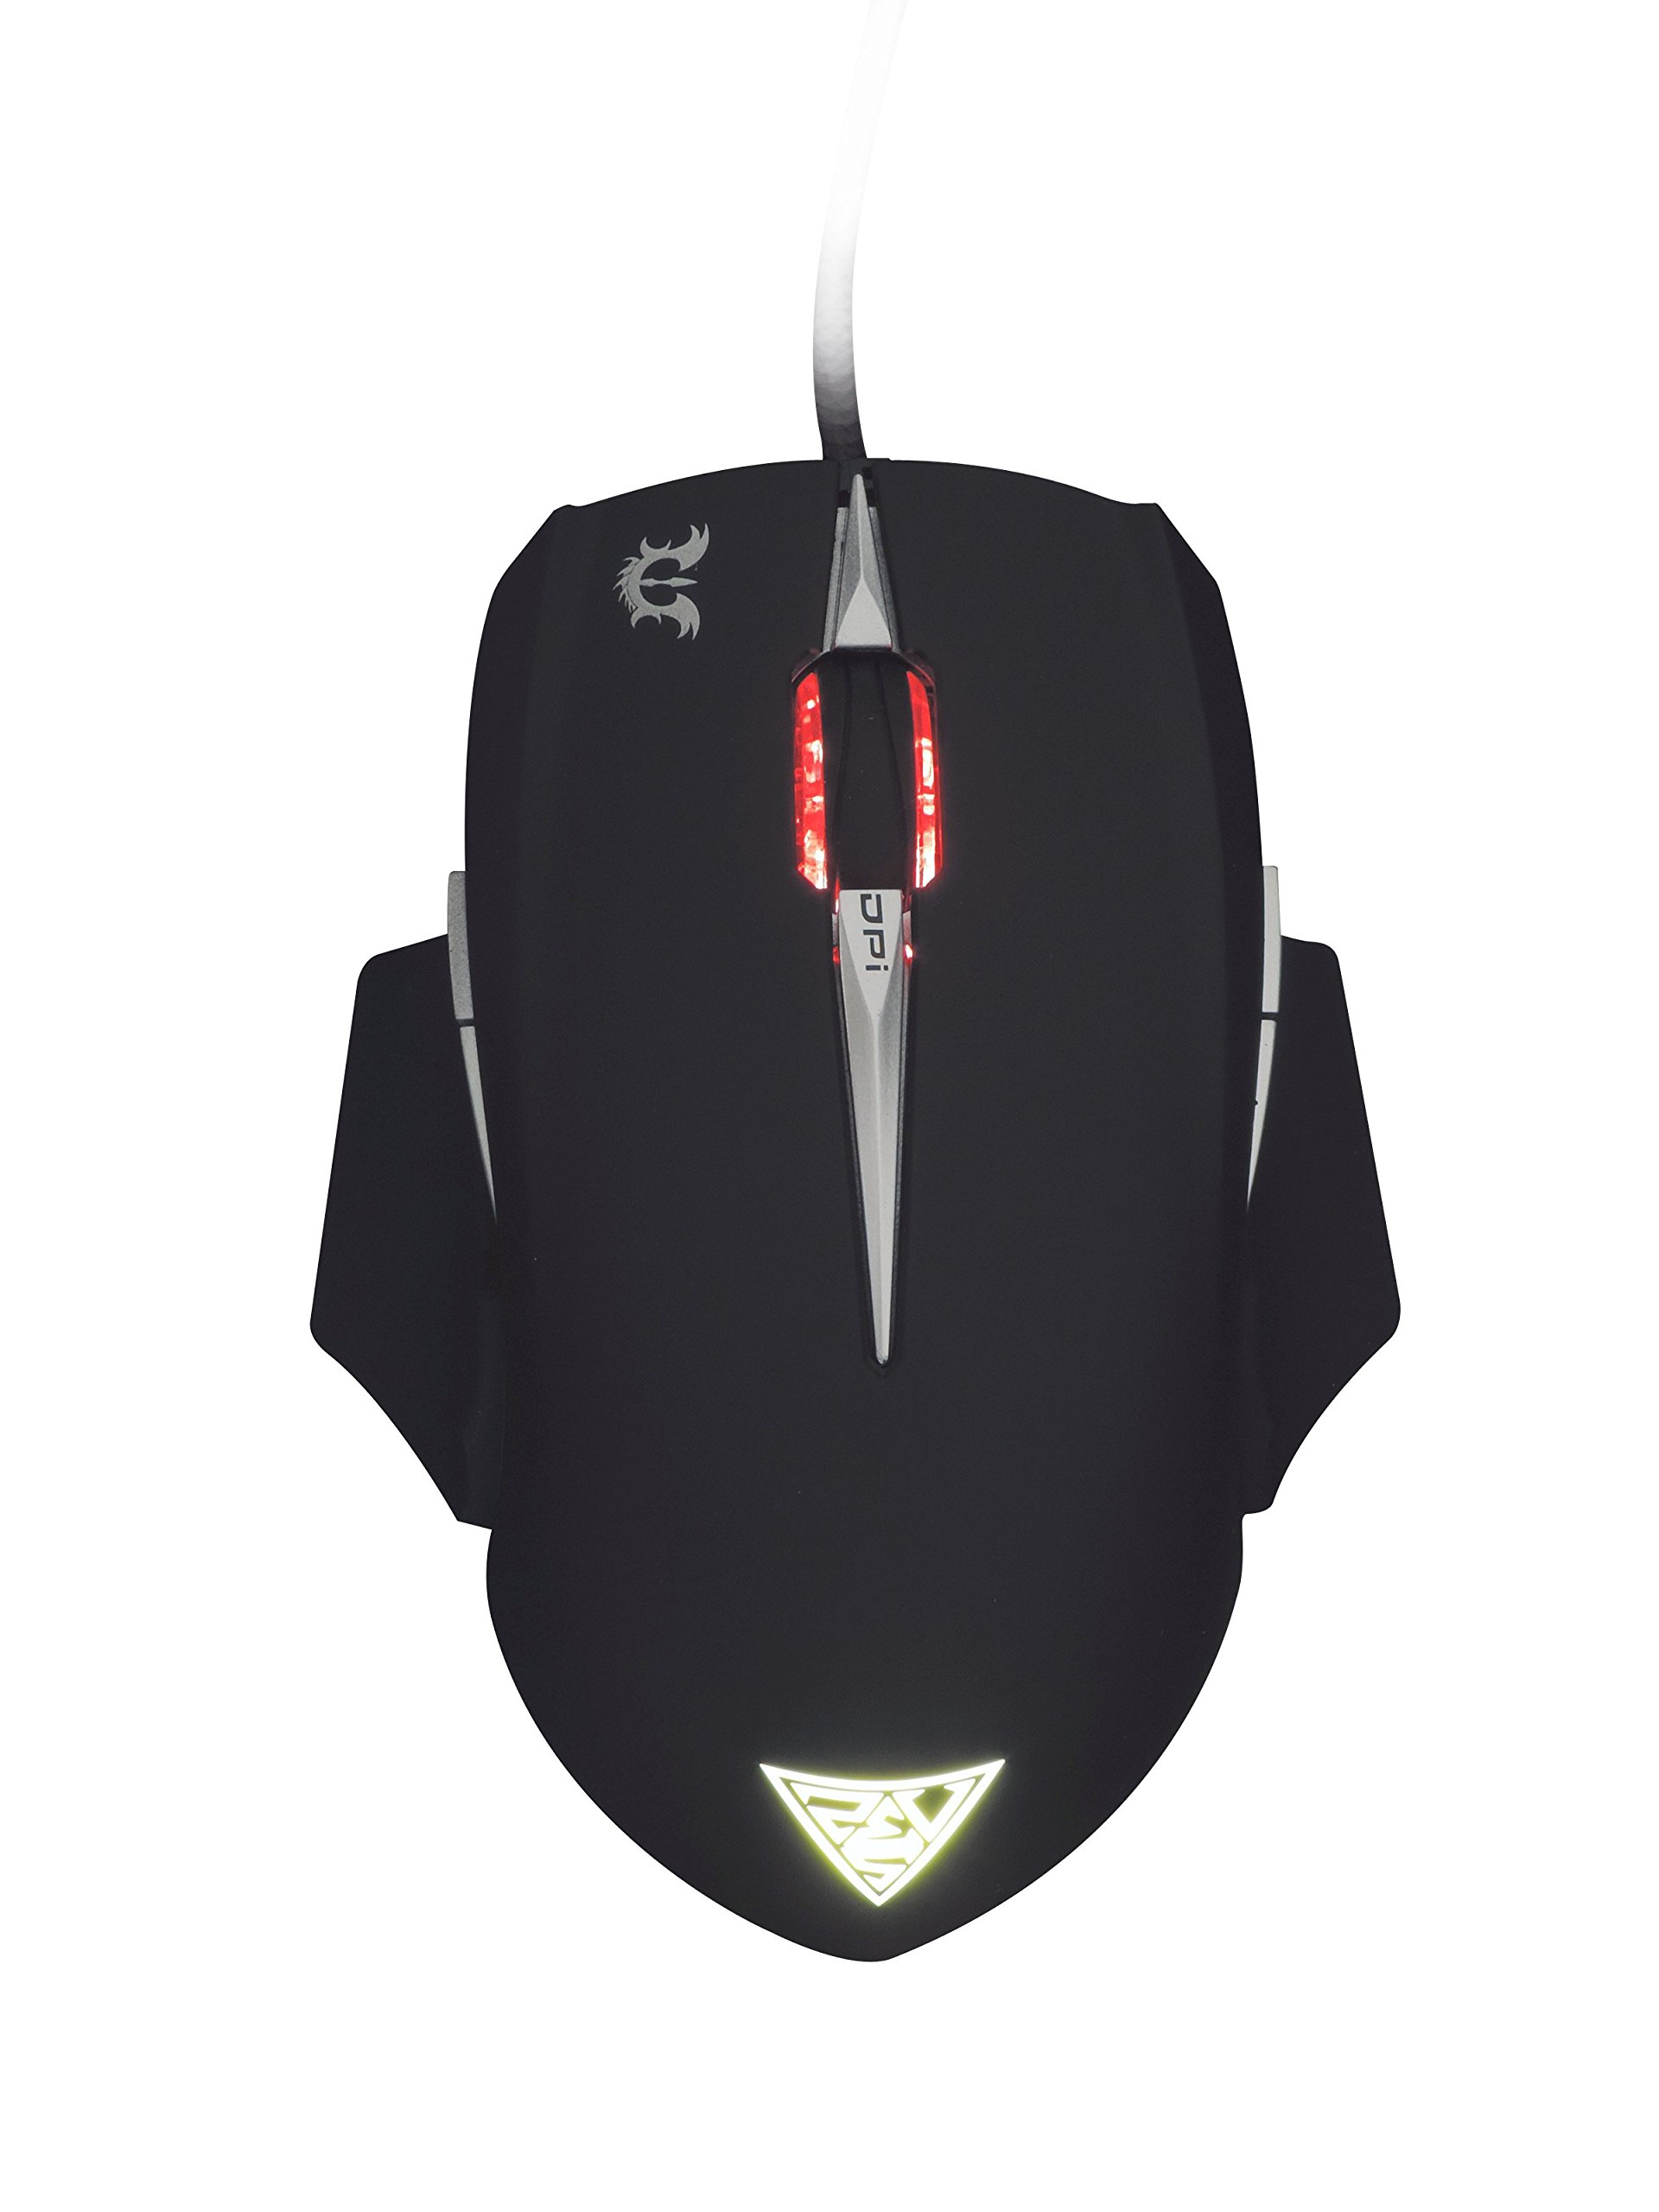 GAMDIAS Erebos GMS7500 Optical MOBA Gaming Mouse, 3 Set Ambidextrous  Adjustable Side Panels Weight System, 7 Programmable Buttons, 8200 DPI for PC by GAMDIAS (Image #9)